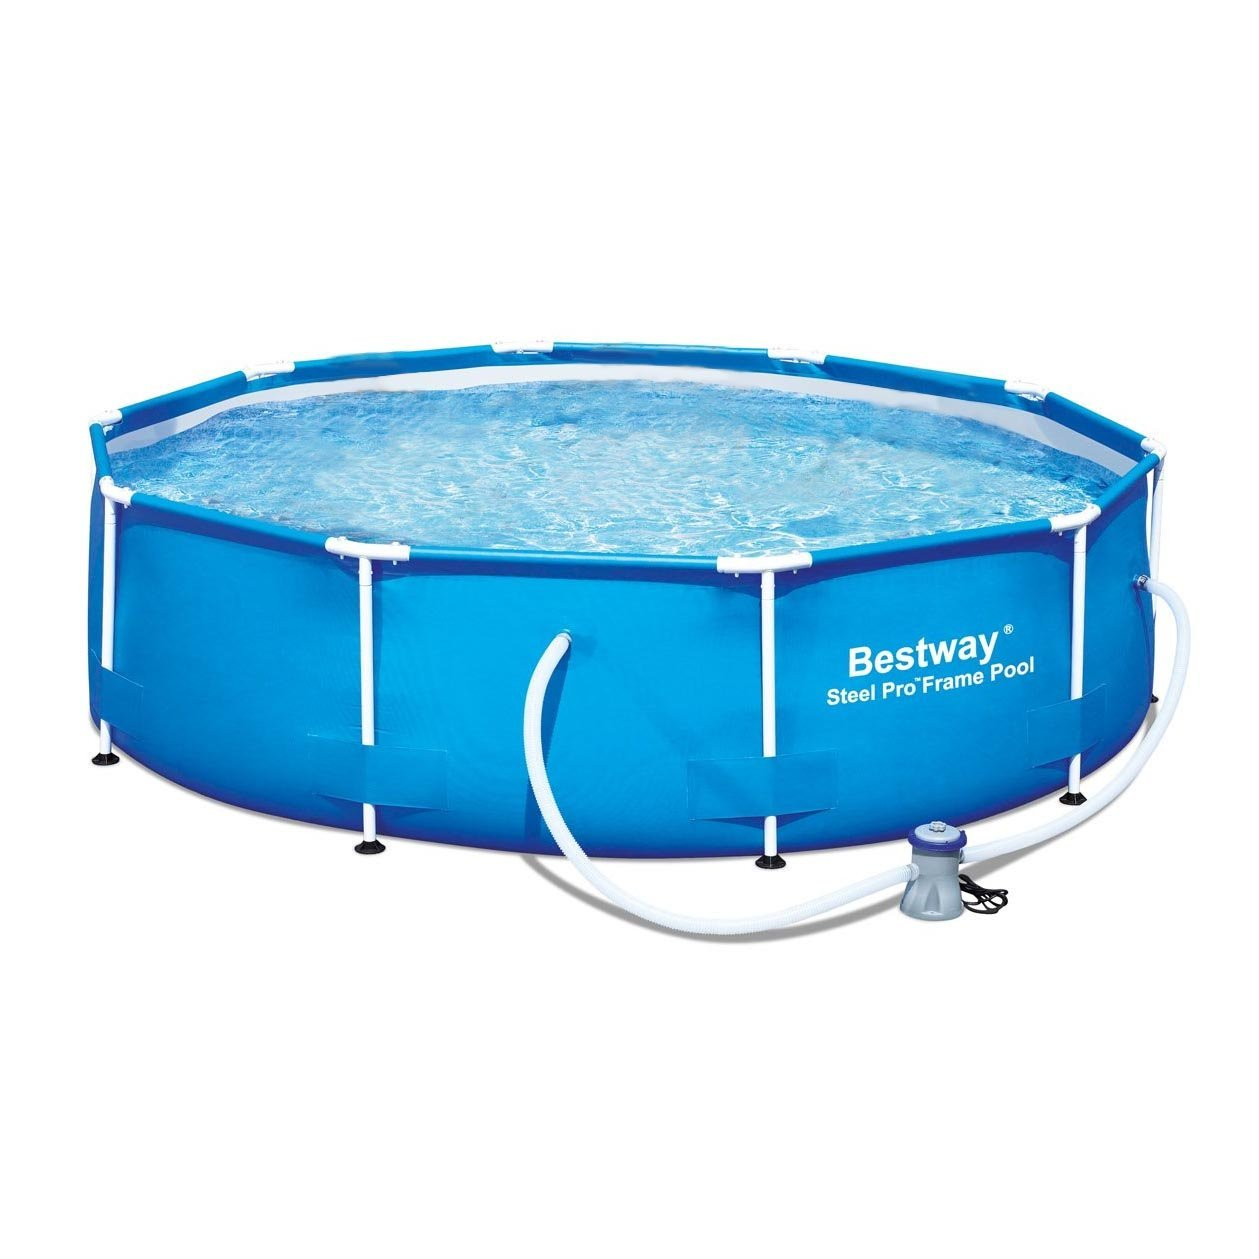 Bestway 12 39 X 36 Steel Pro Frame Above Ground Family Swimming Pool Set W Pump Whole Pools